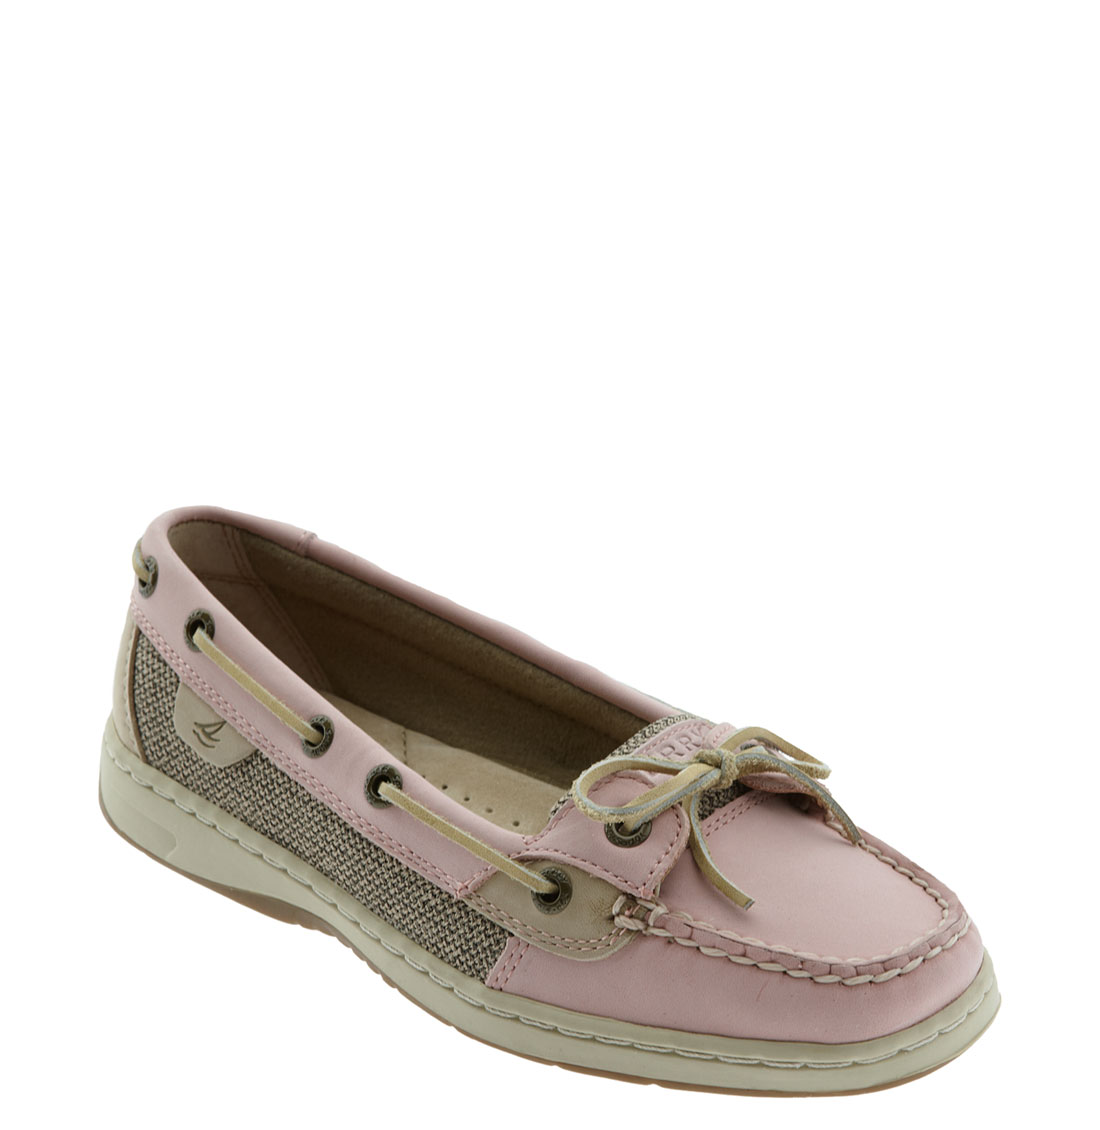 sperry top sider angelfish boat shoe in pink blush oat